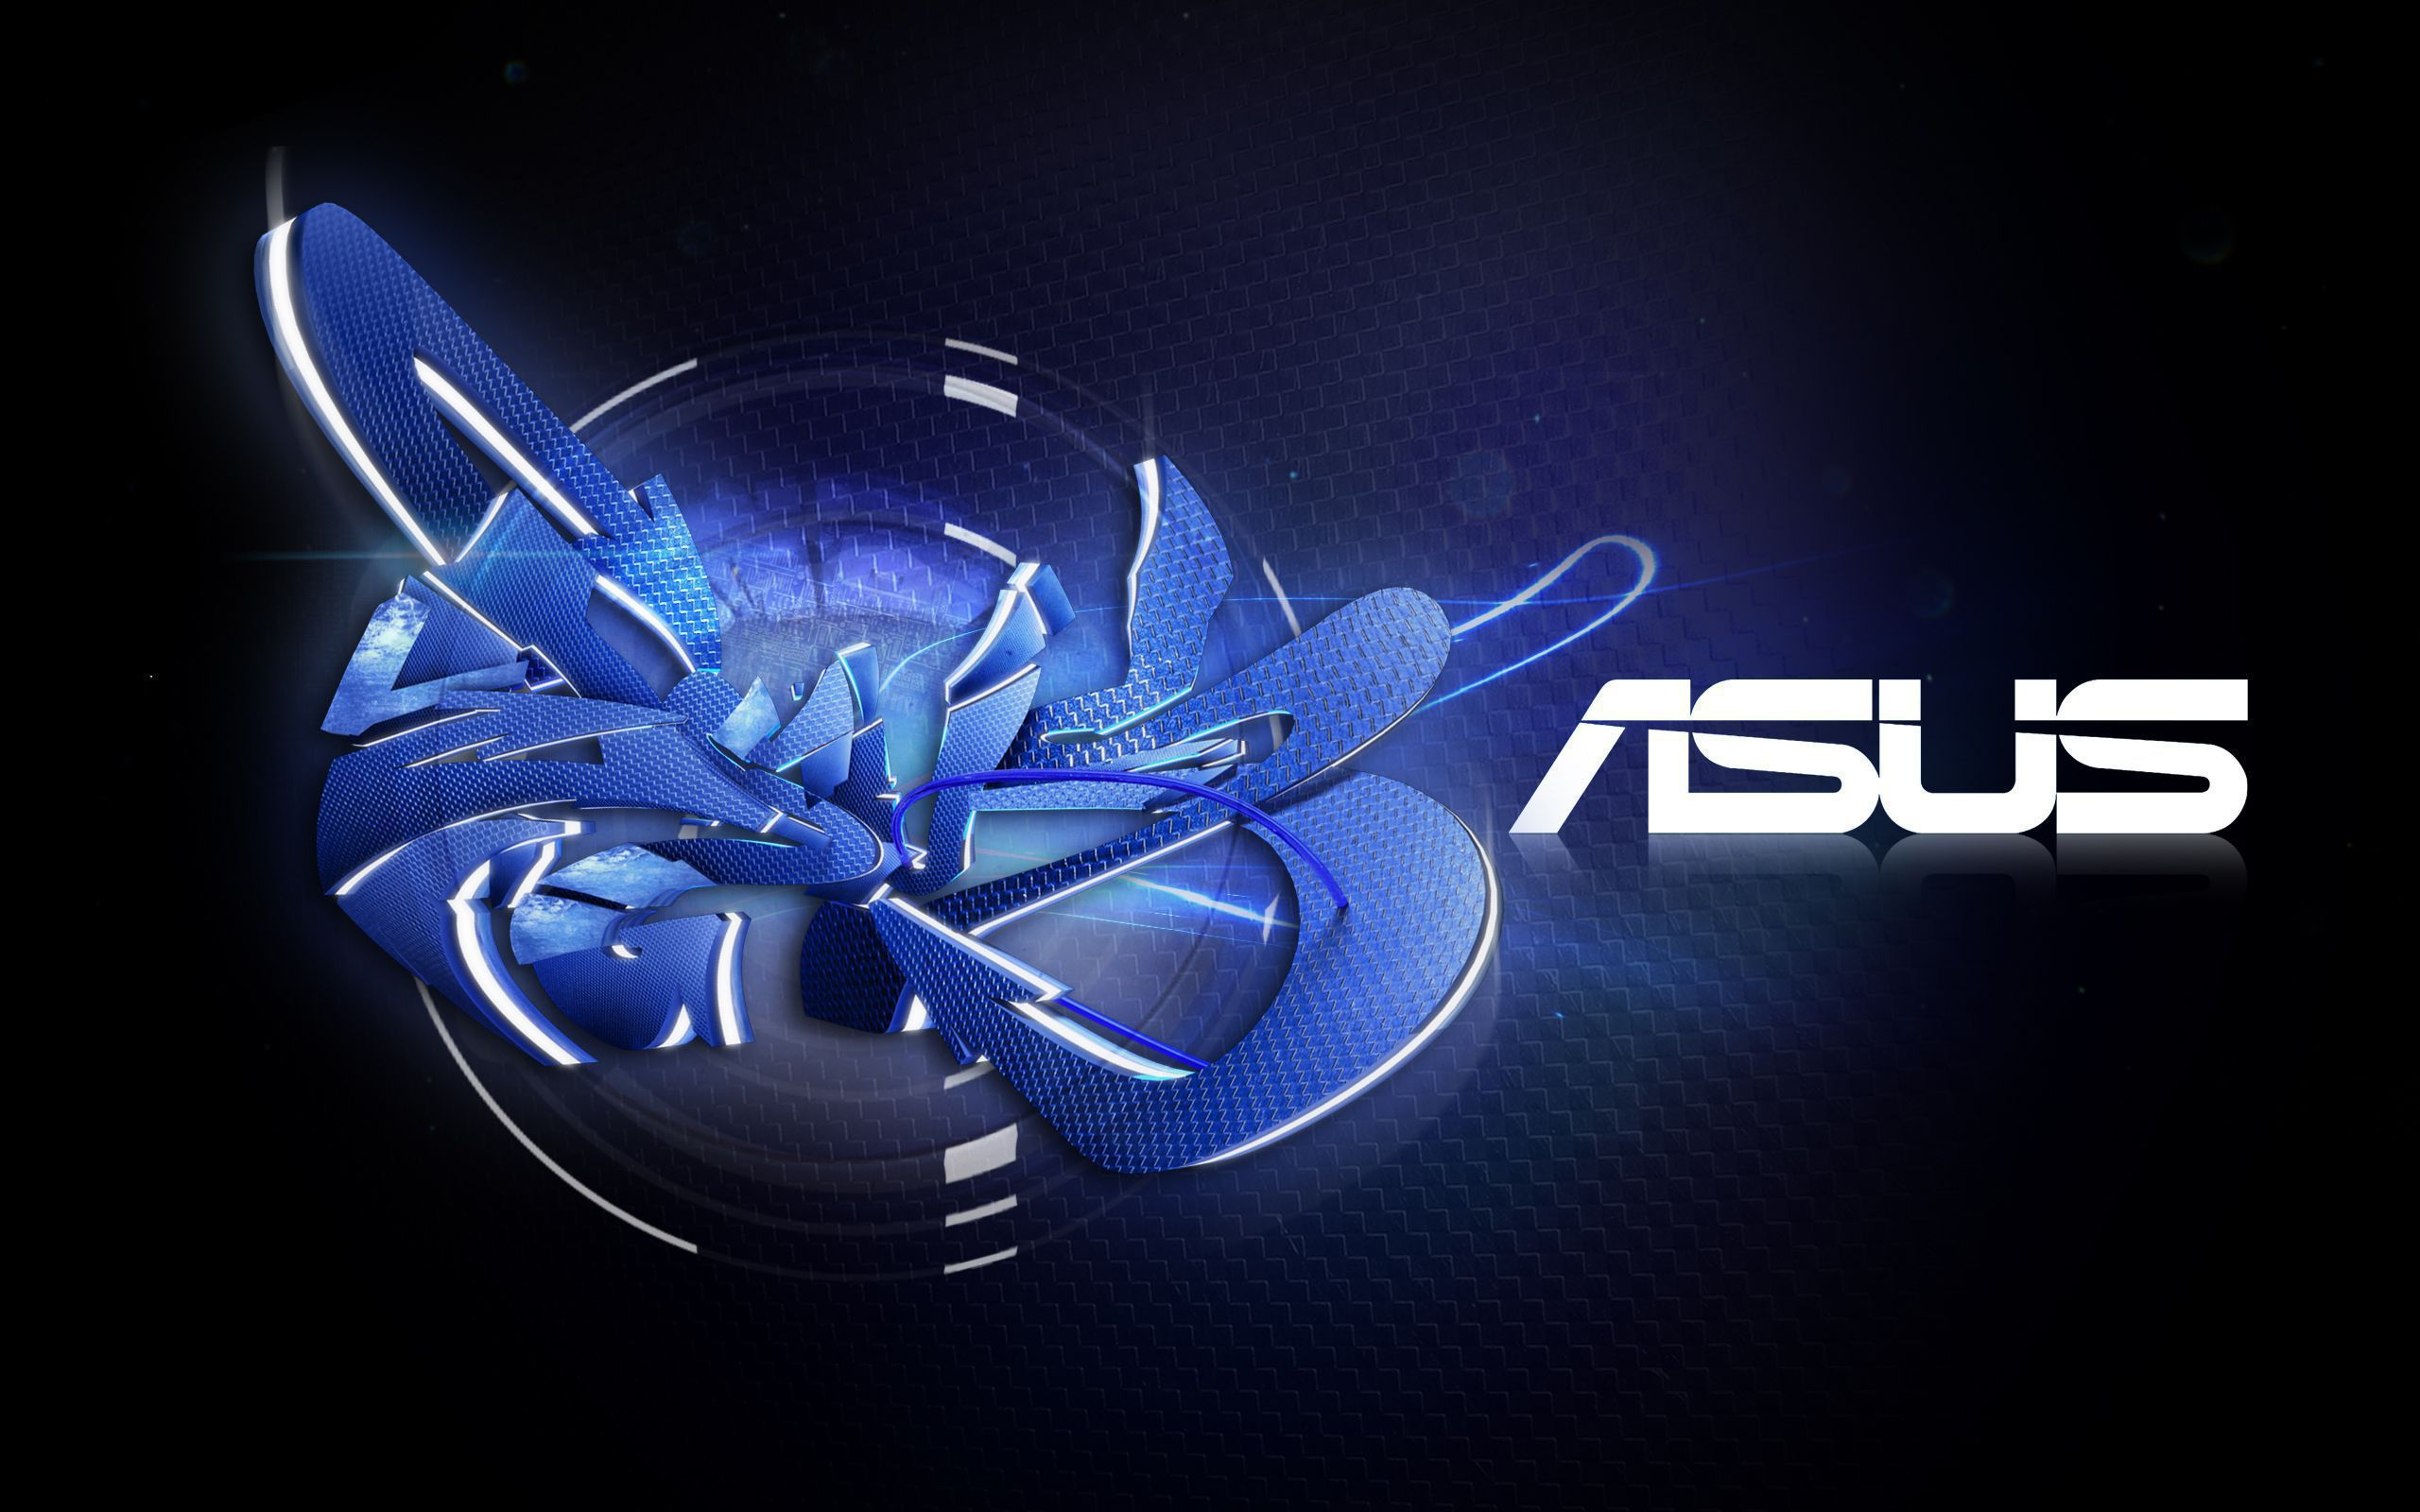 Asus Wallpaper Pack